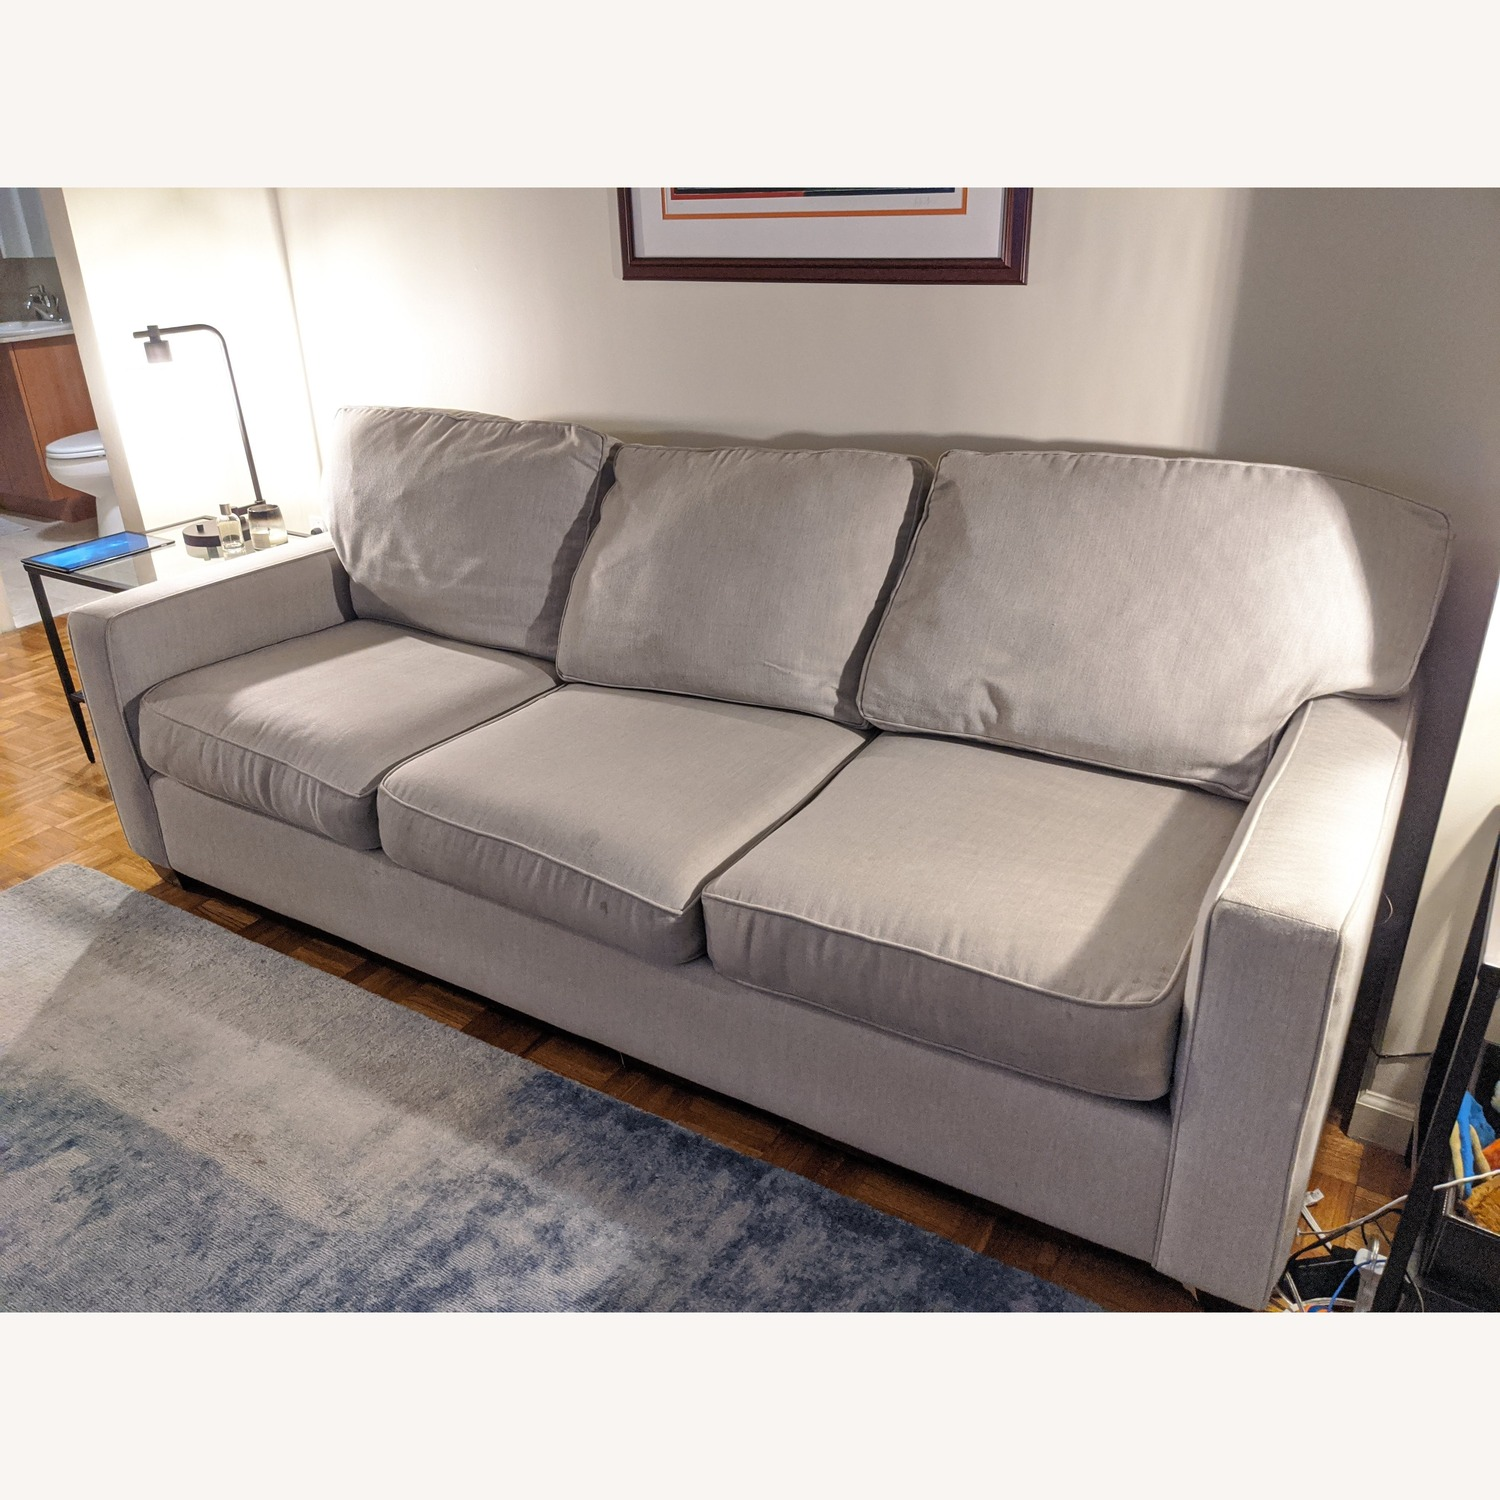 Pottery Barn Buchanan Square Arm Upholstered Couch - image-2